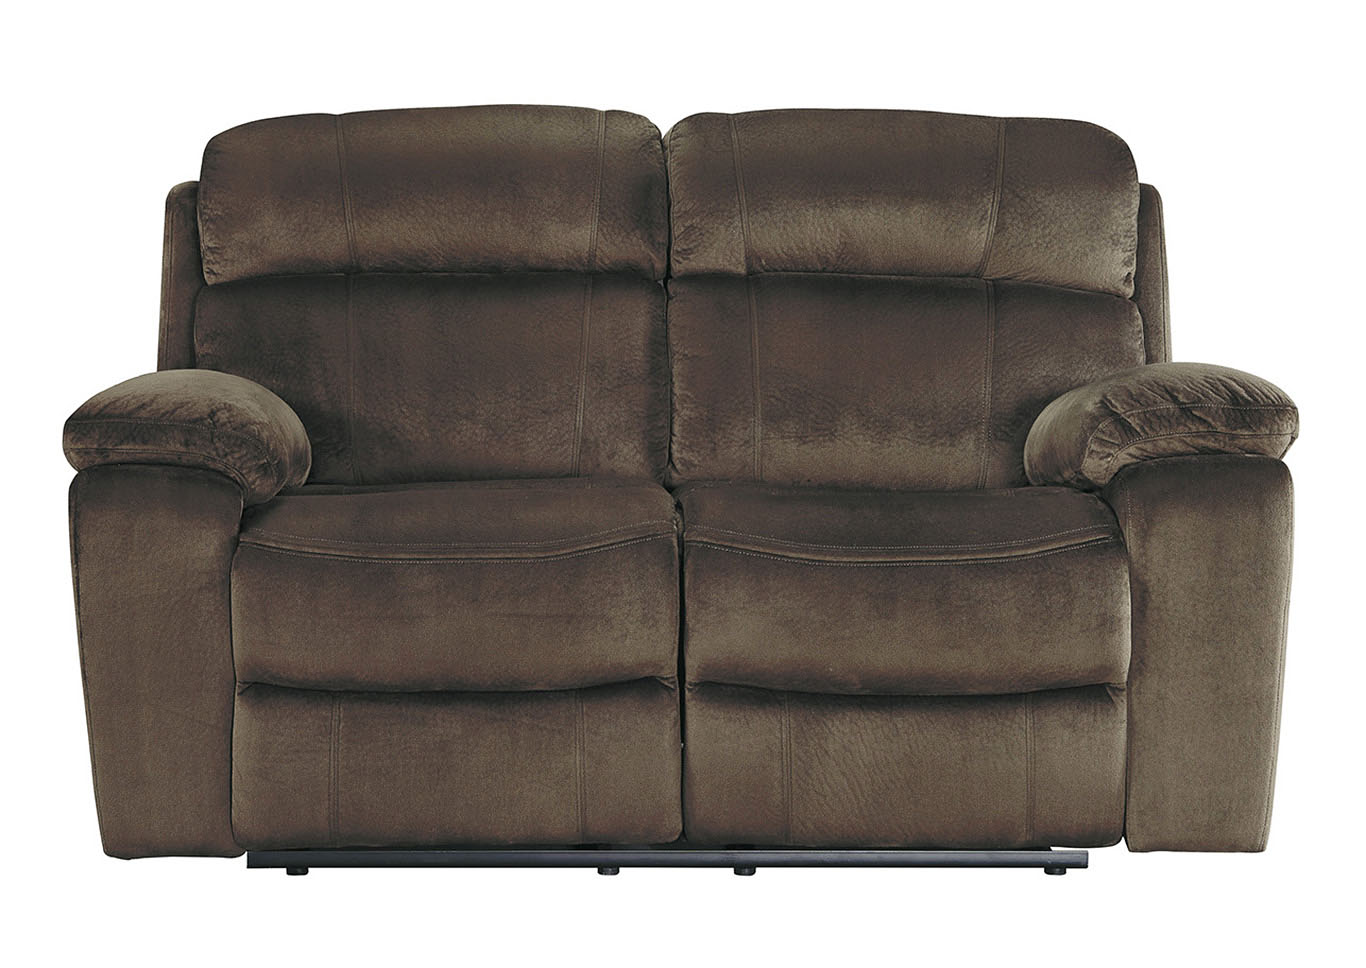 Davis home furniture asheville nc uhland chocolate power reclining loveseat Davis home furniture asheville hours